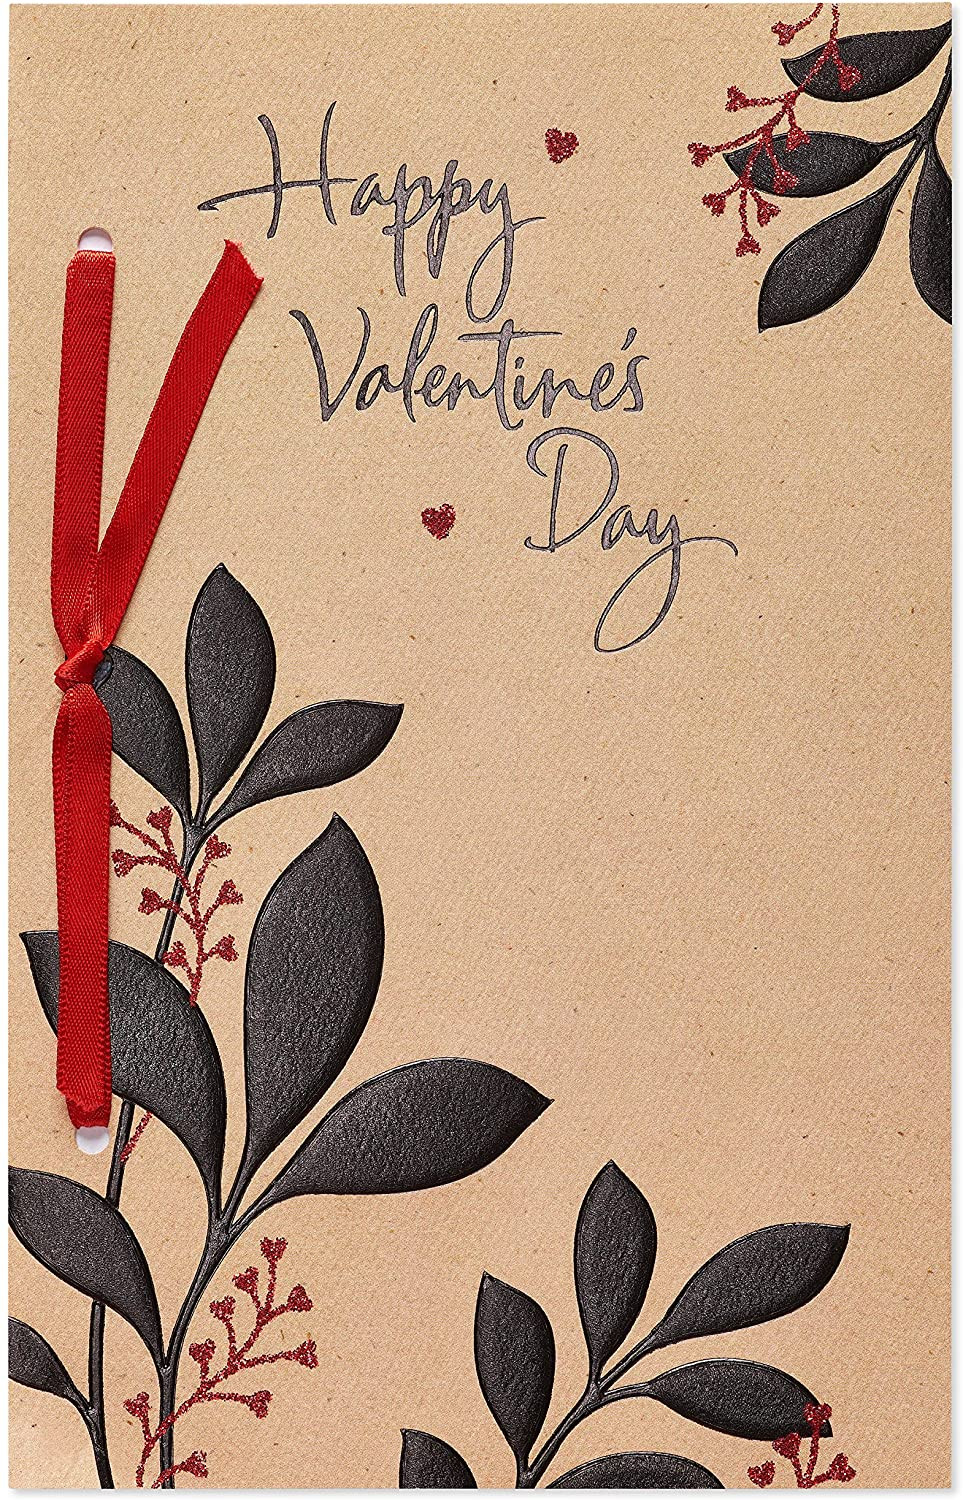 ideas for valentine's day cards